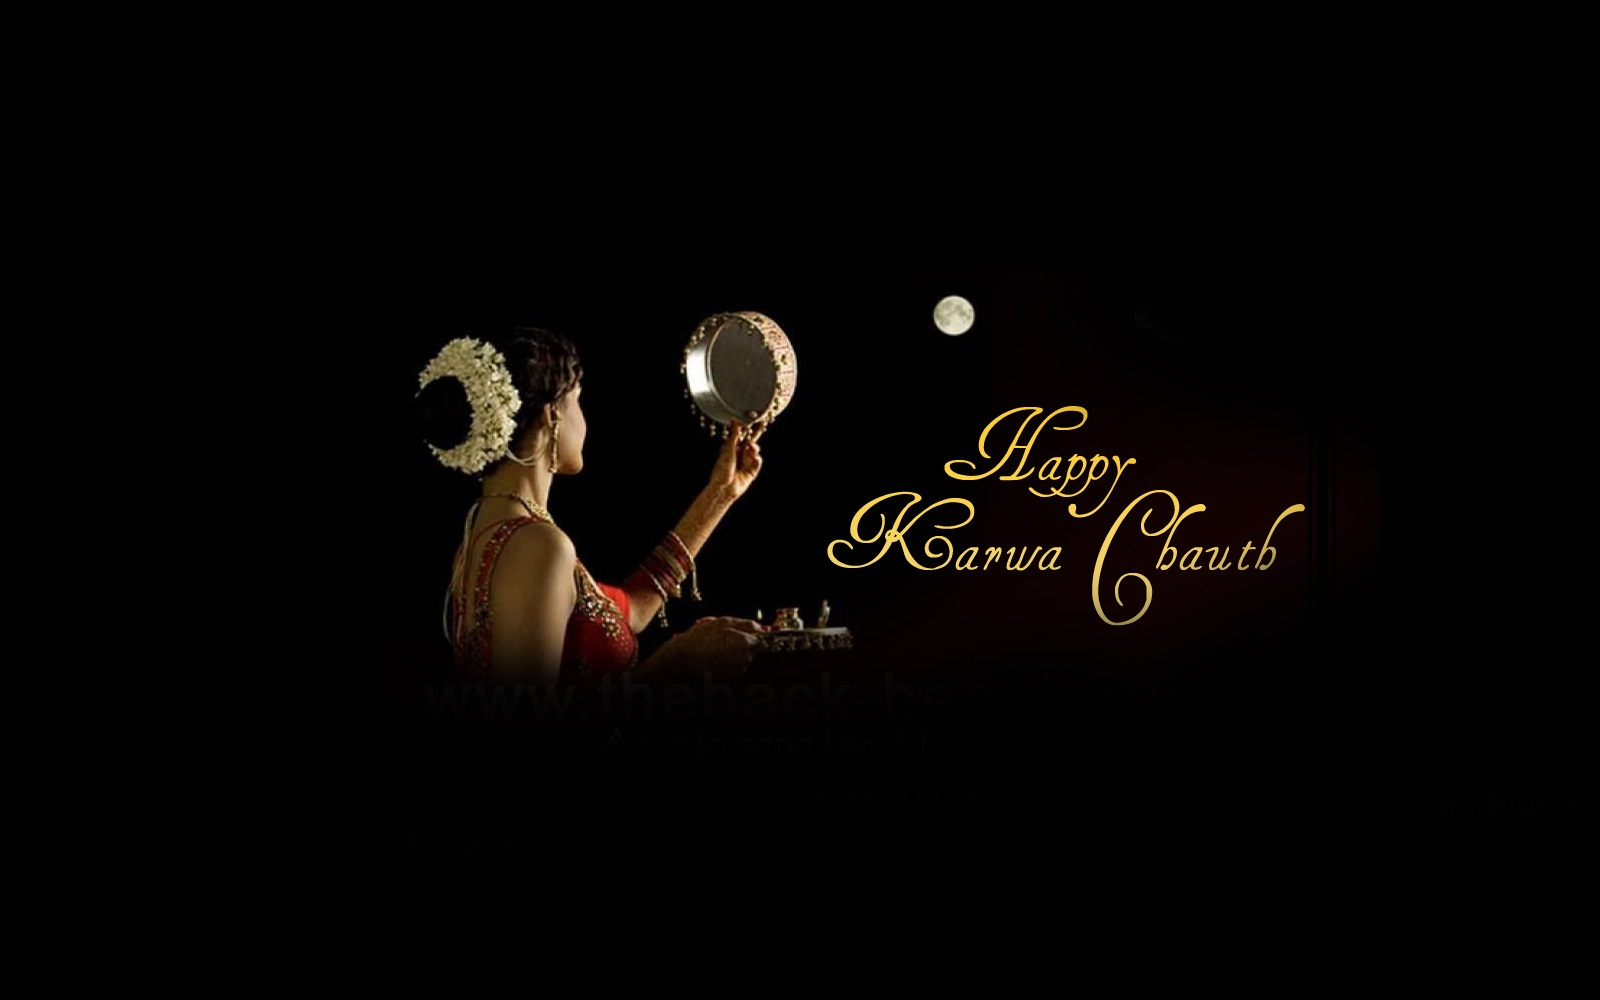 karwa chauth pictures